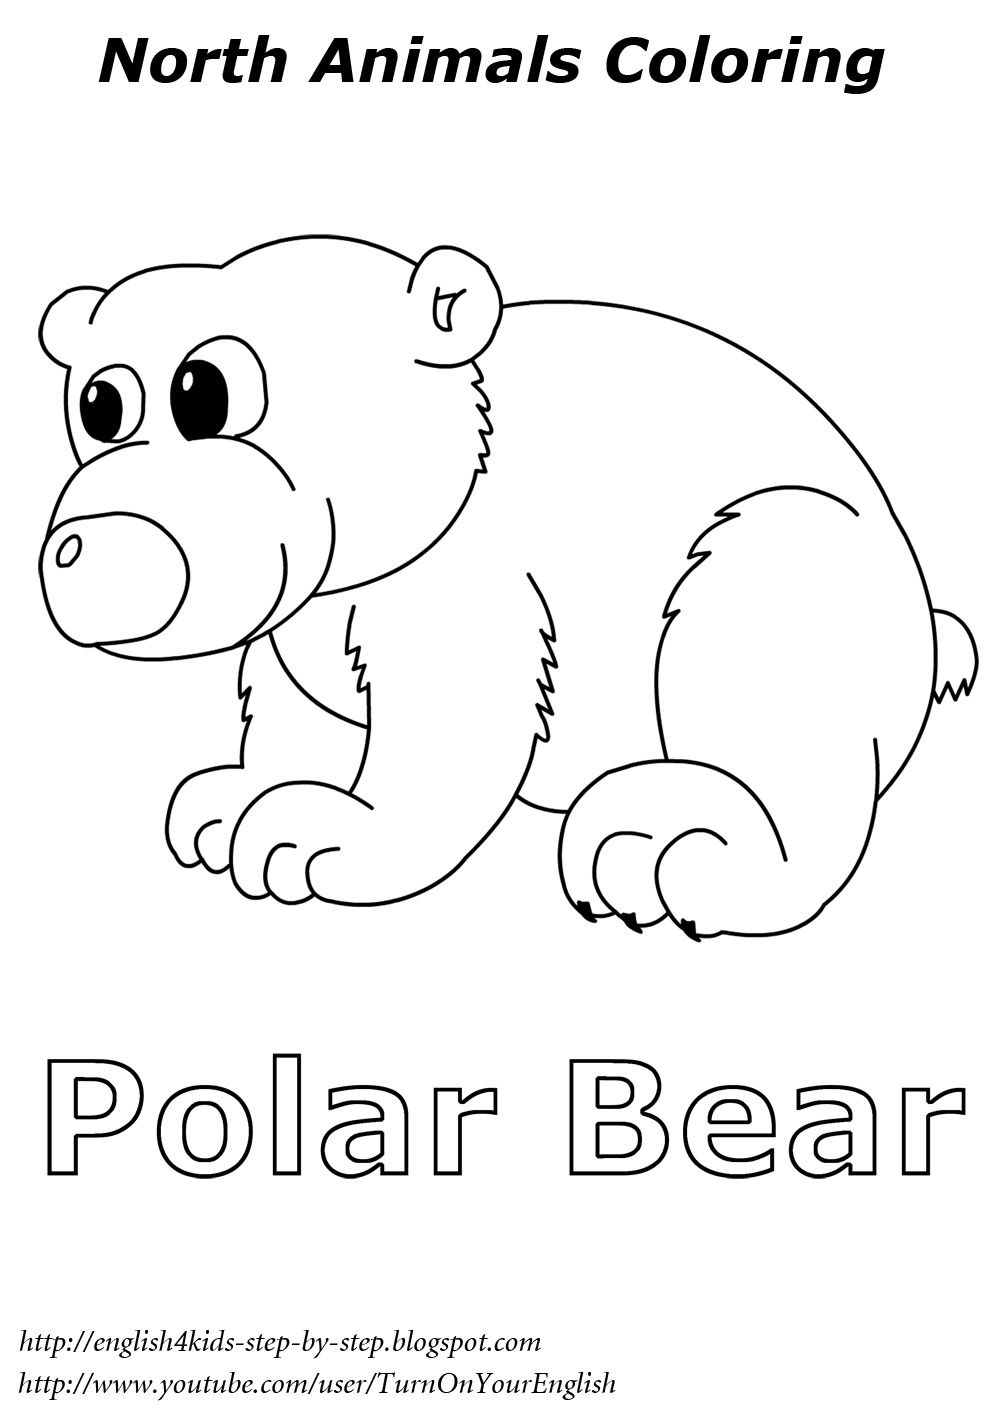 polar bear coloring english learning winter worksheets and flashcards arctic animals polar. Black Bedroom Furniture Sets. Home Design Ideas